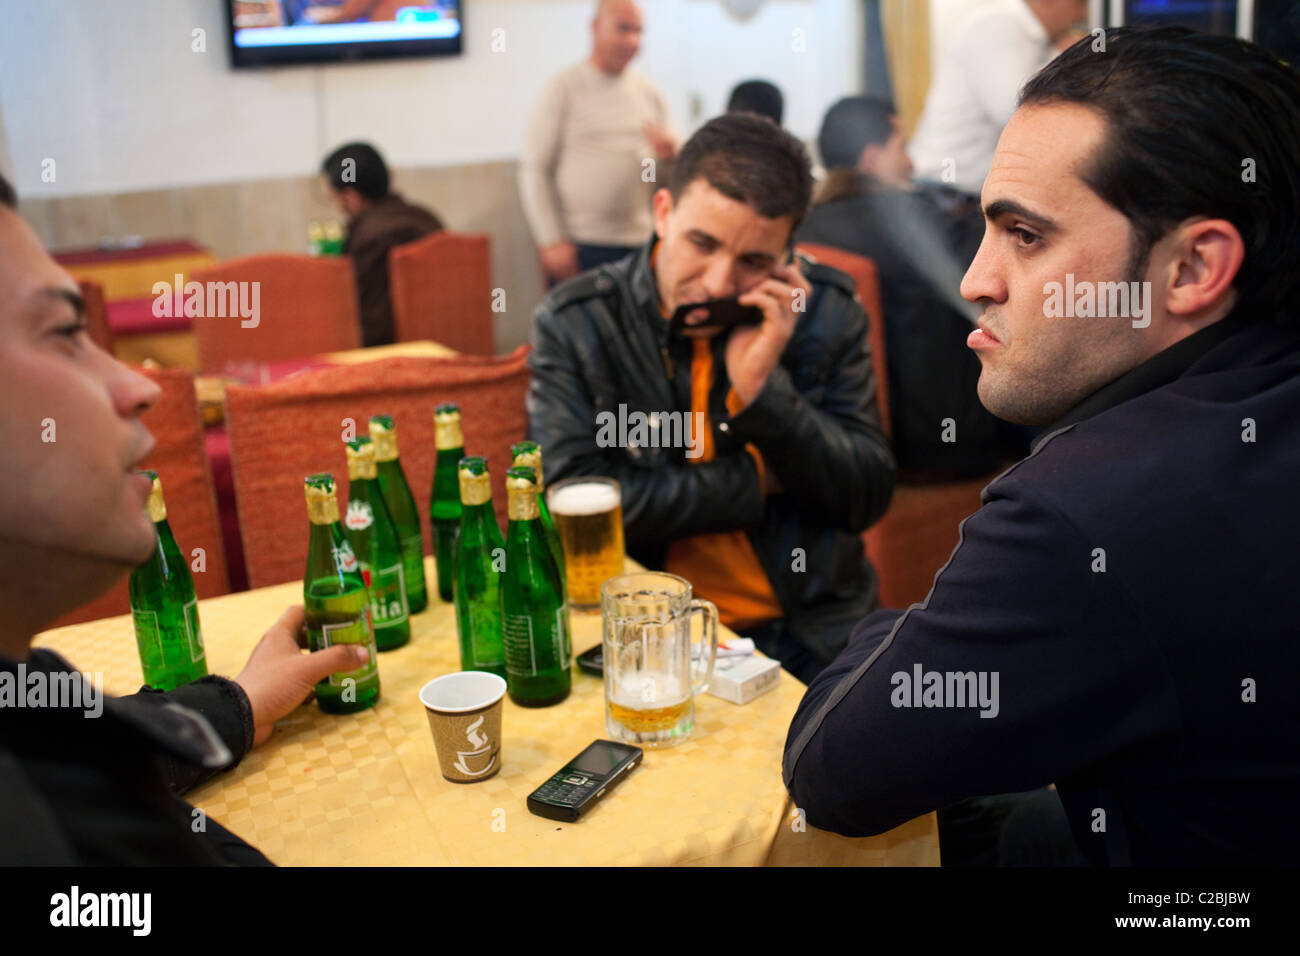 Young customers drink  beer, coffee and smoke cigarettes in a hotel bar serving alcohol in Sfax, Tunisia. - Stock Image